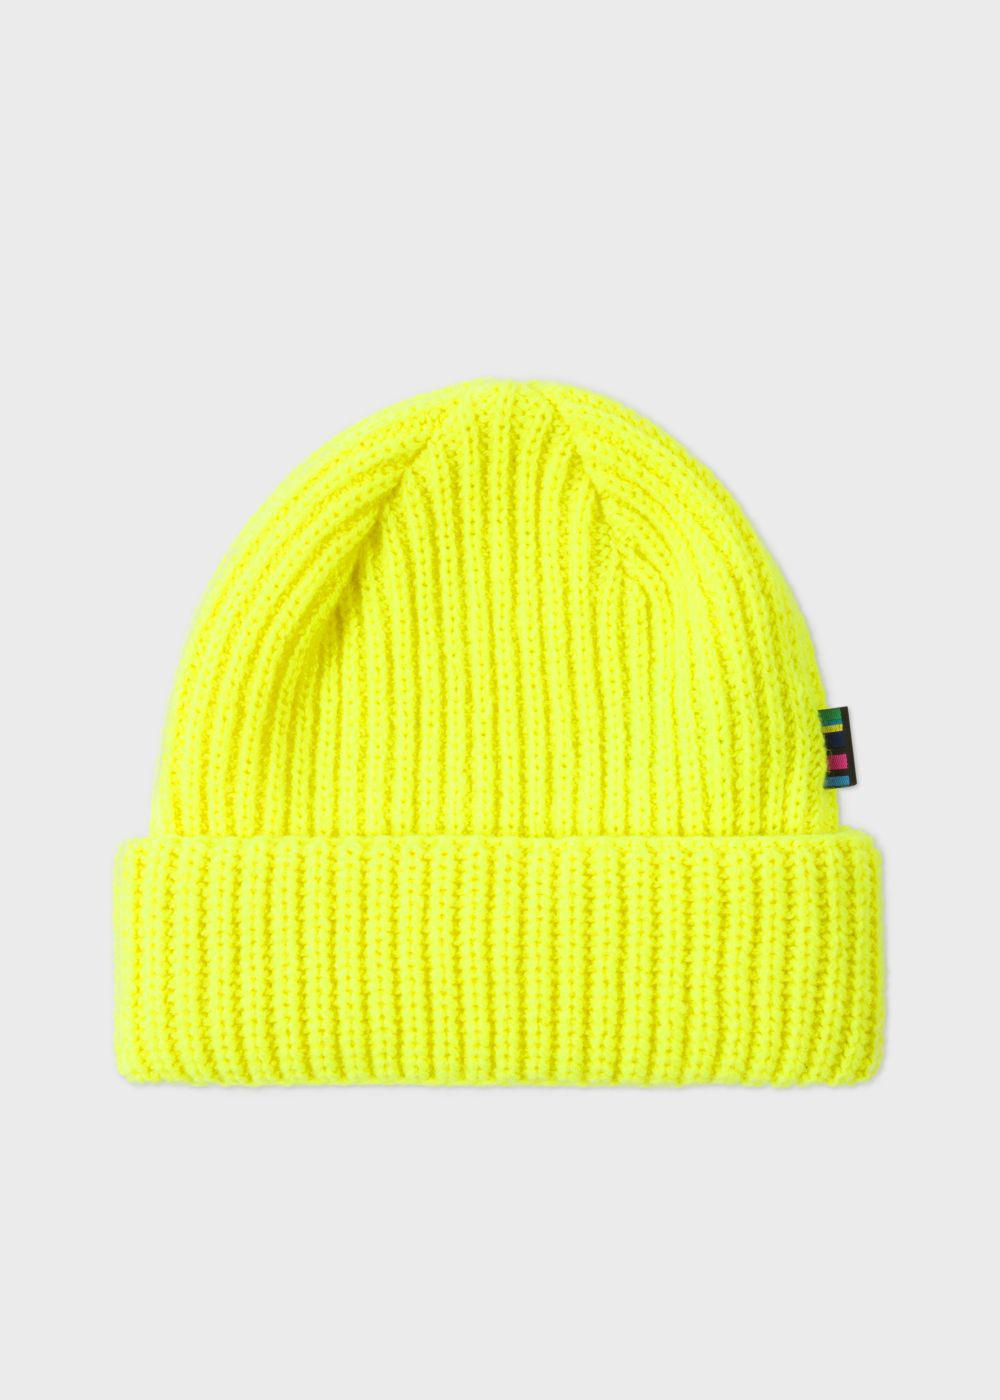 Paul Smith Men s Neon Yellow Wool Beanie Hat in Yellow for Men - Lyst a640ce83909b